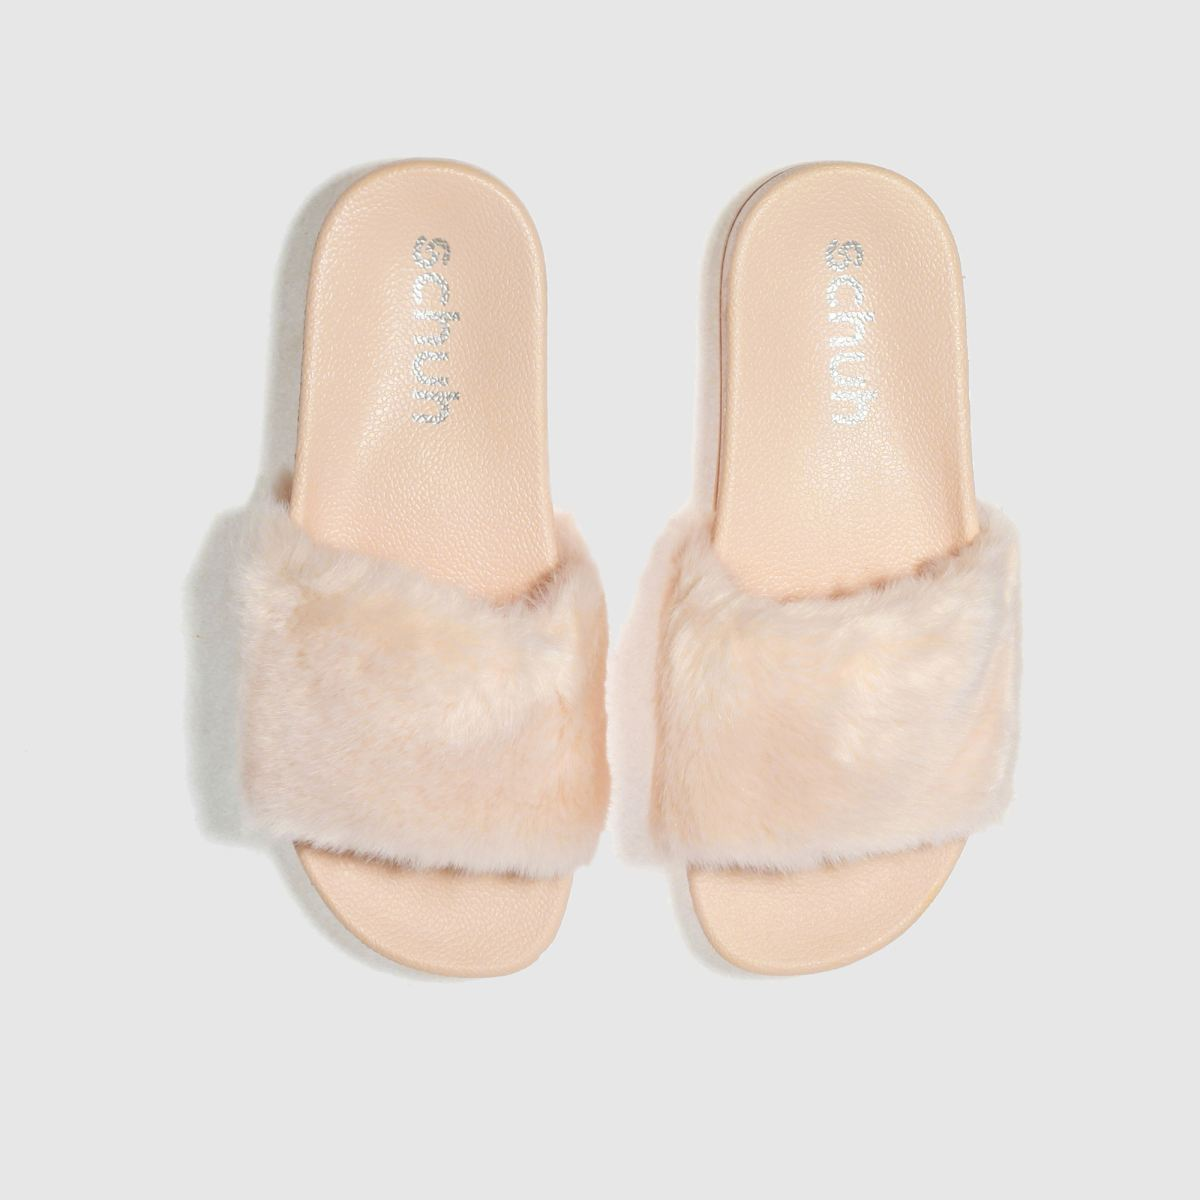 Schuh Pale Pink Blurry Sandals